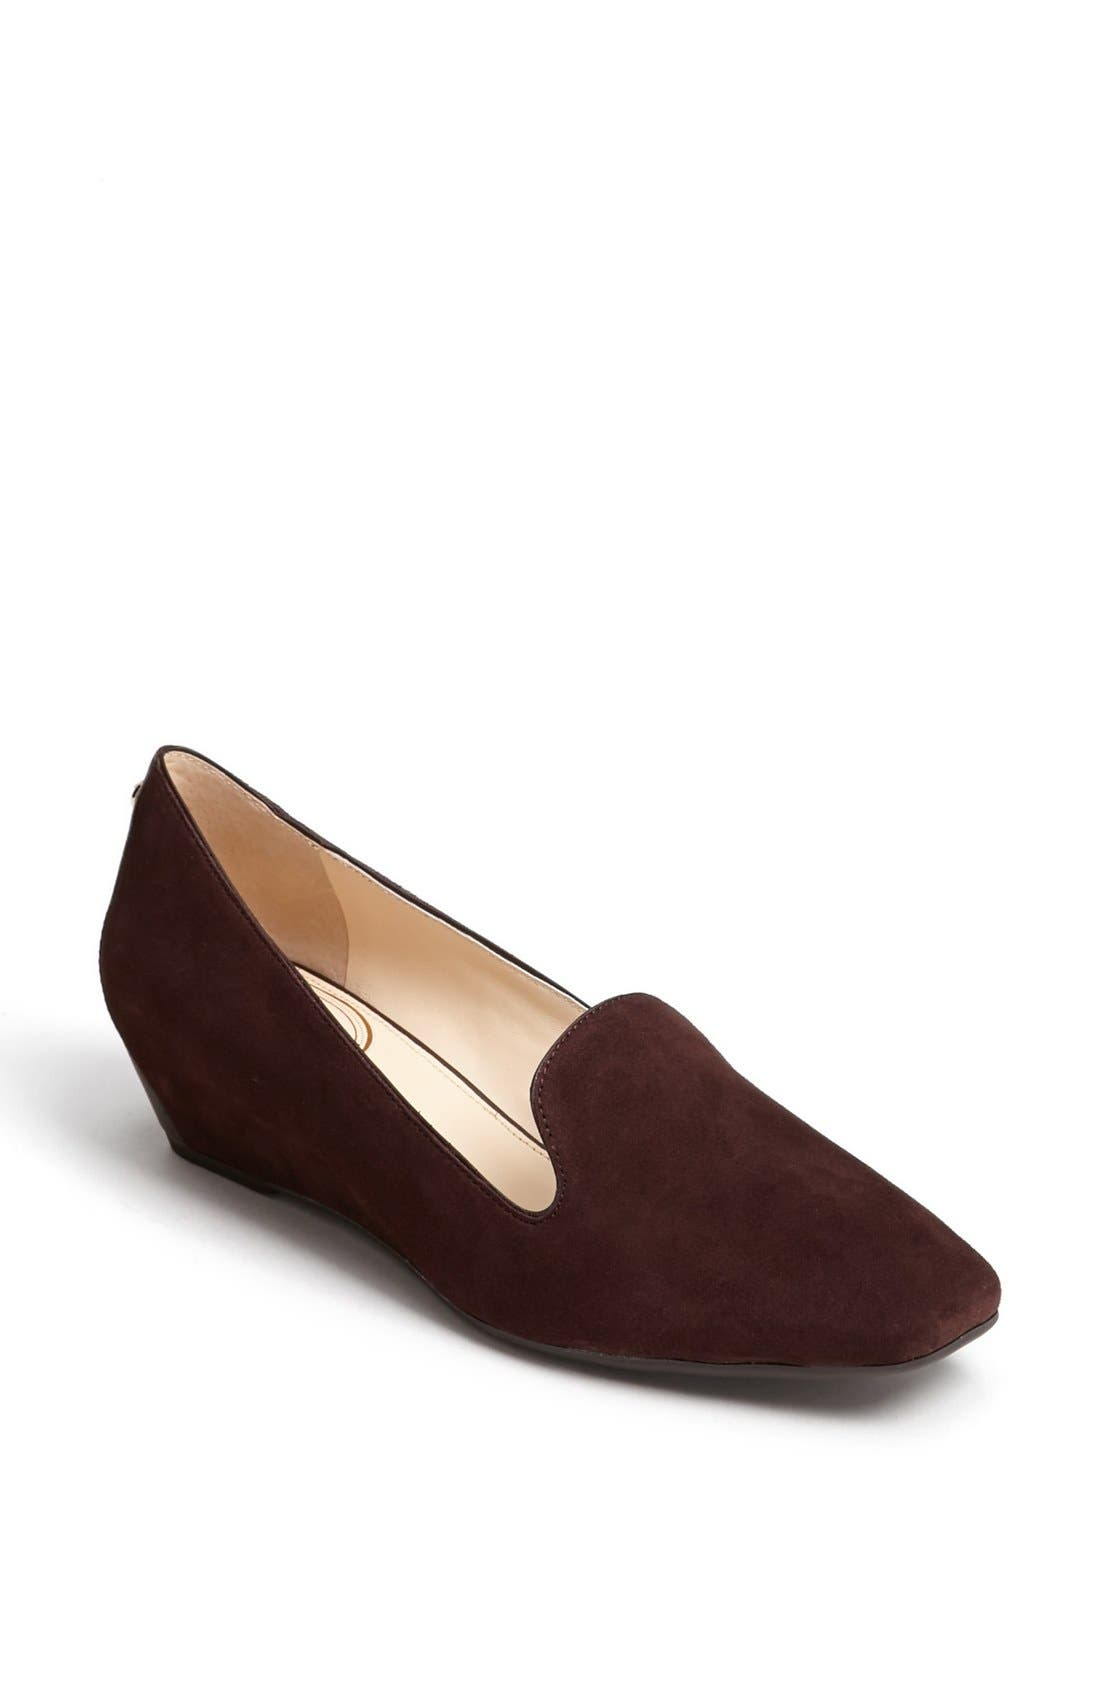 Main Image - VC Signature 'Mabel' Wedge Loafer